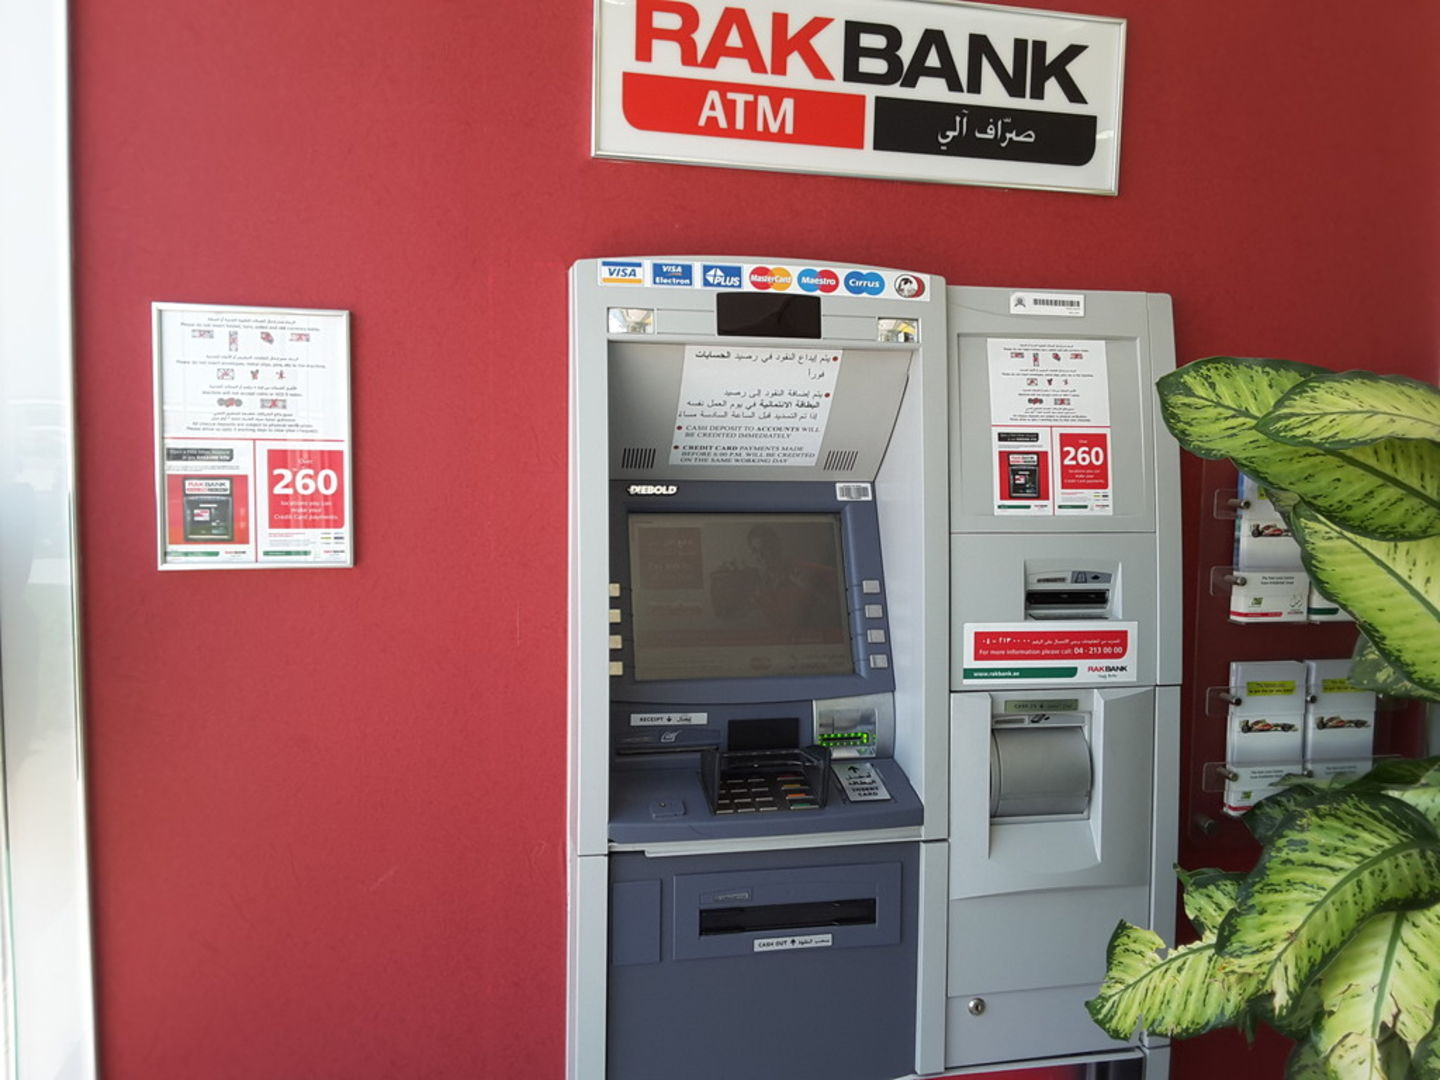 HiDubai-business-rakbank-atm-cdm-finance-legal-banks-atms-al-quoz-industrial-3-dubai-2